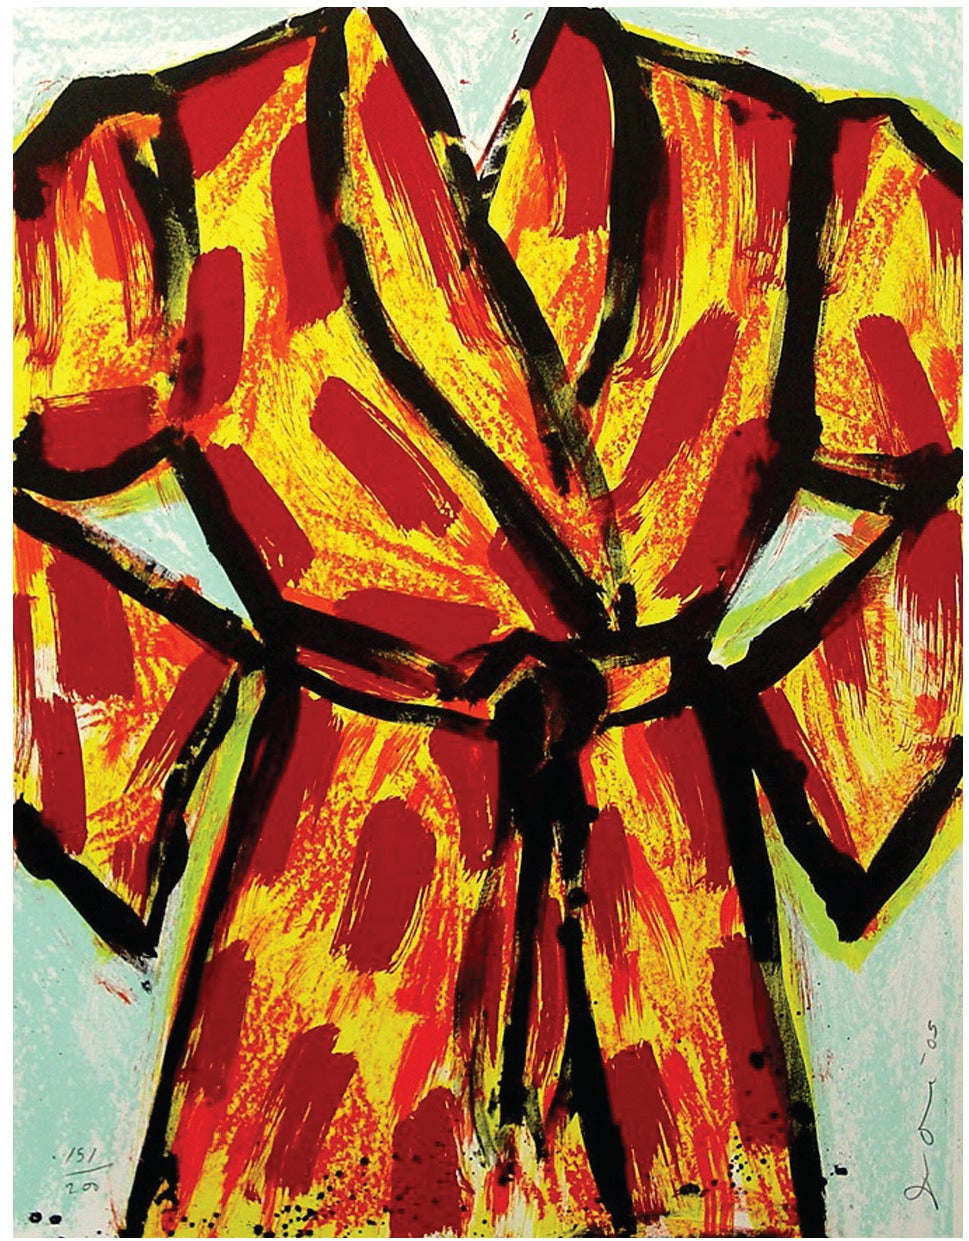 Jim Dine - Black Ink Robe, edition 52/200 1